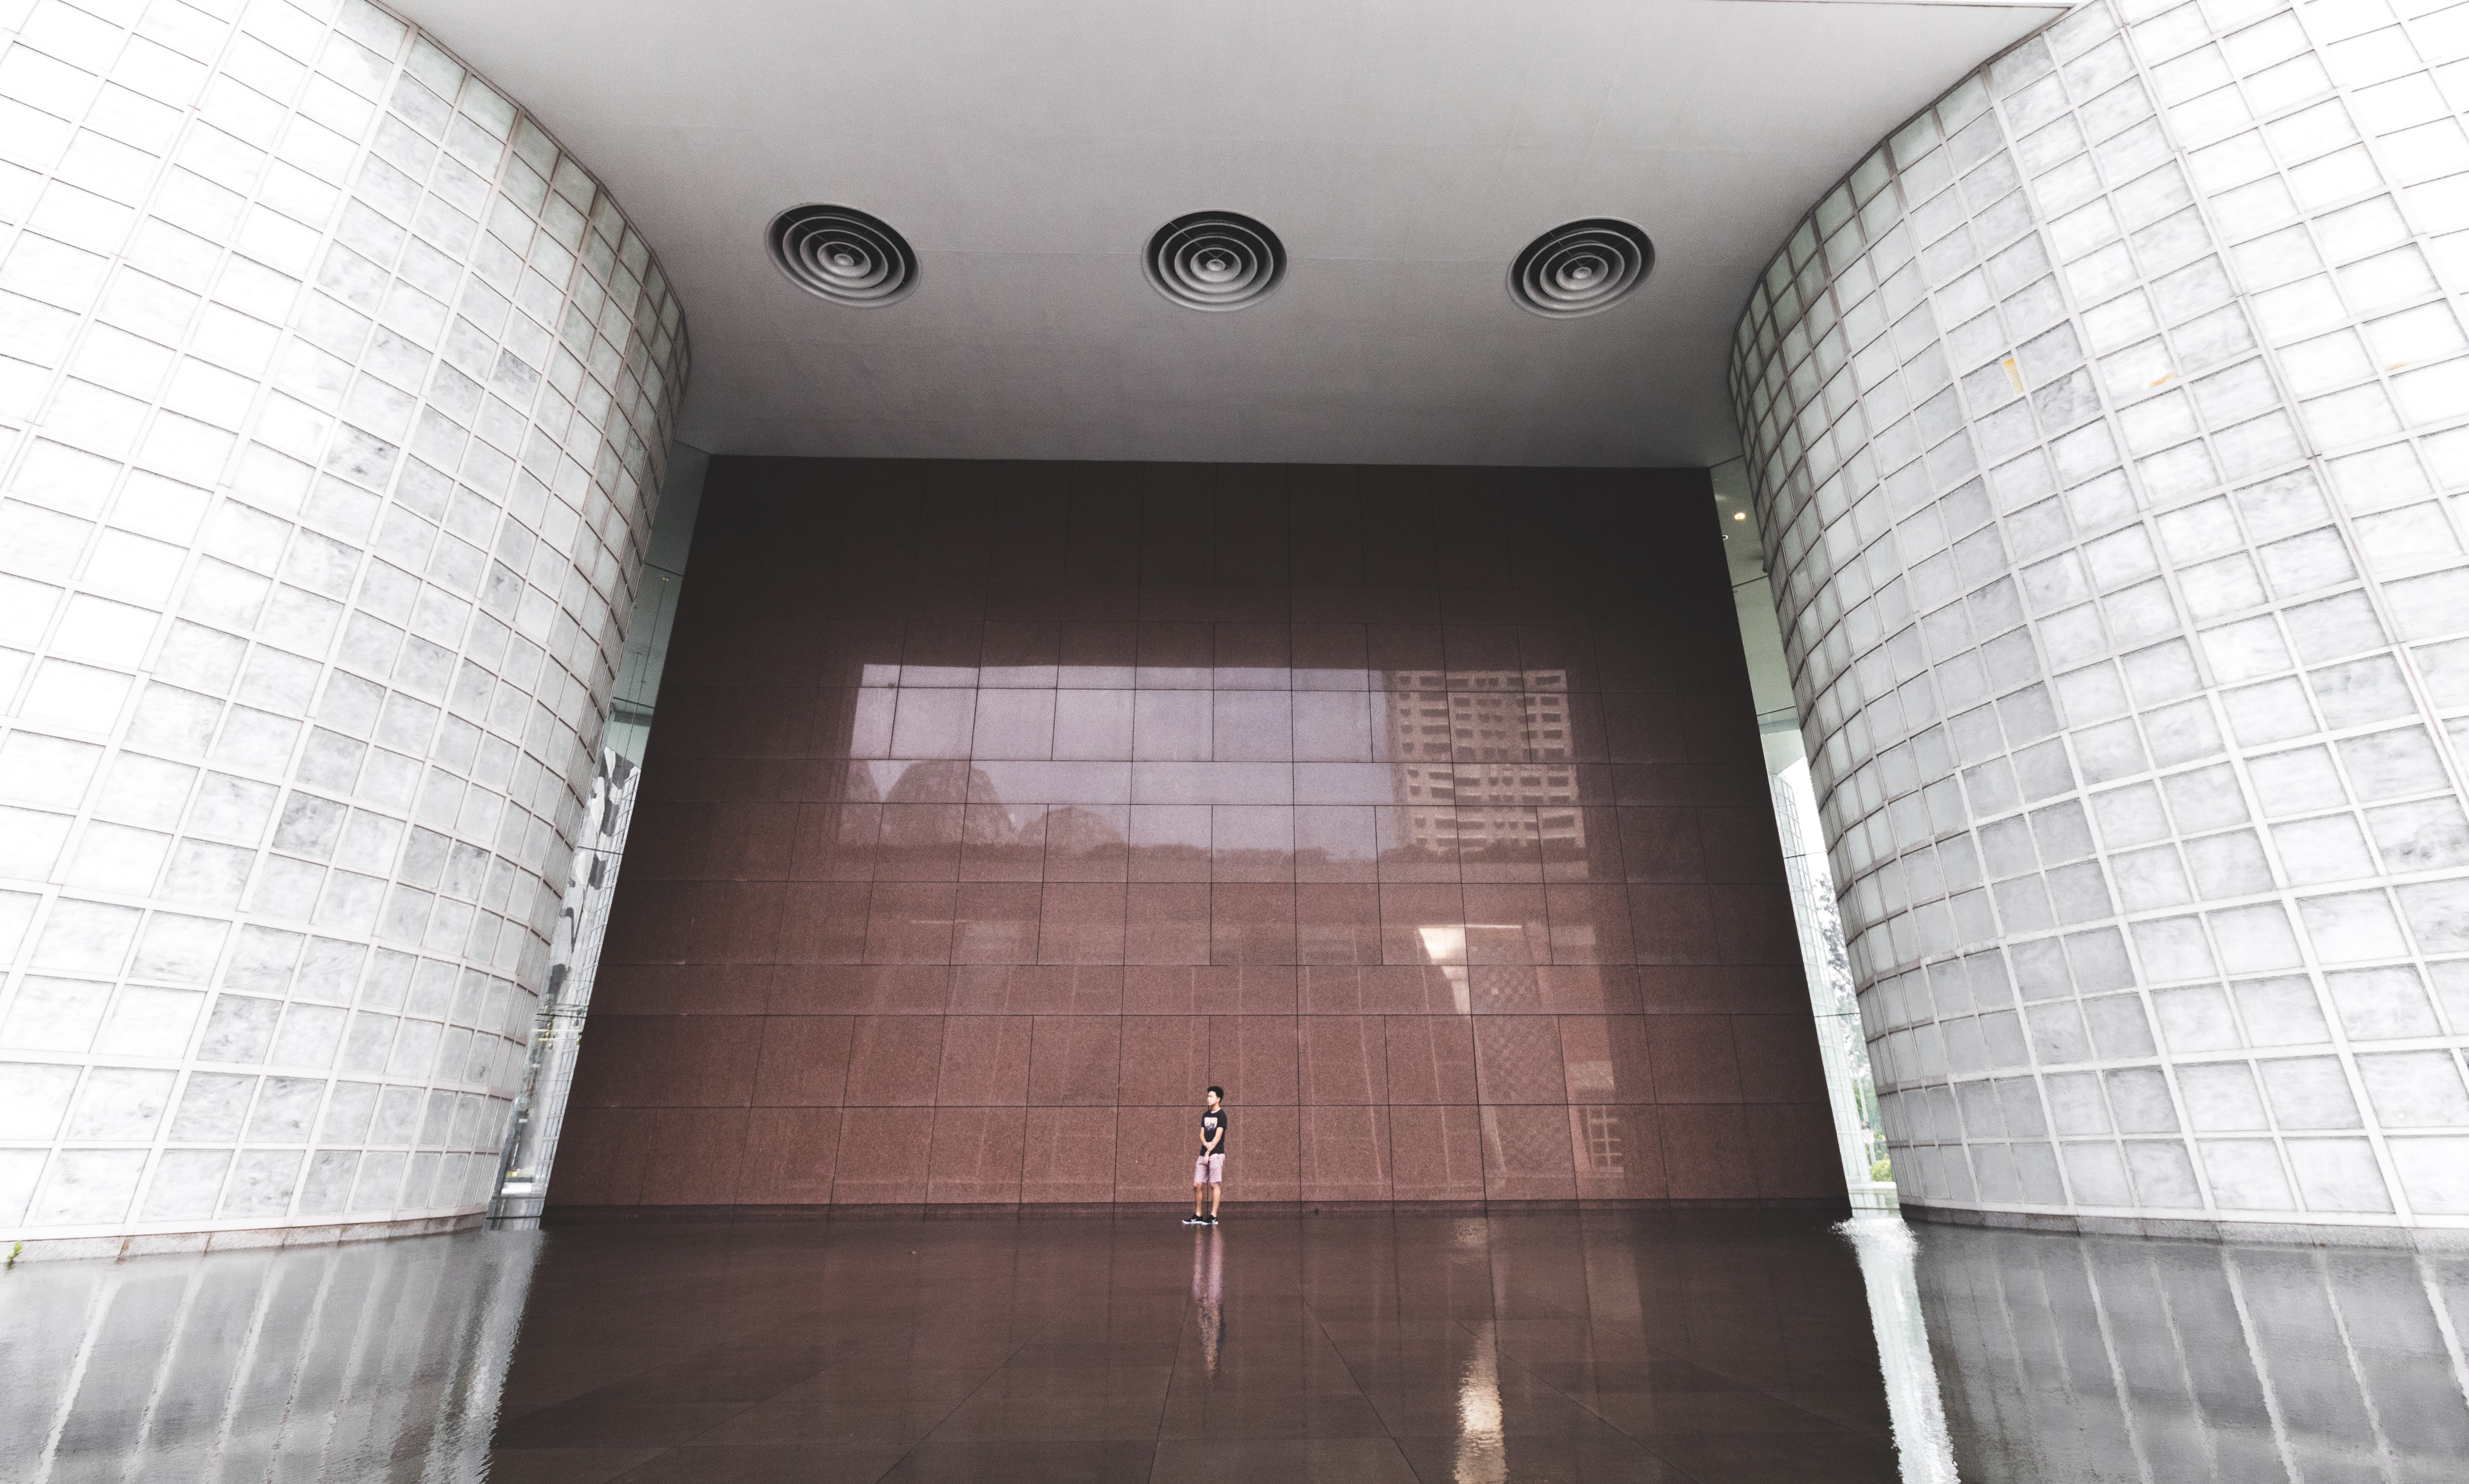 man standing inside building